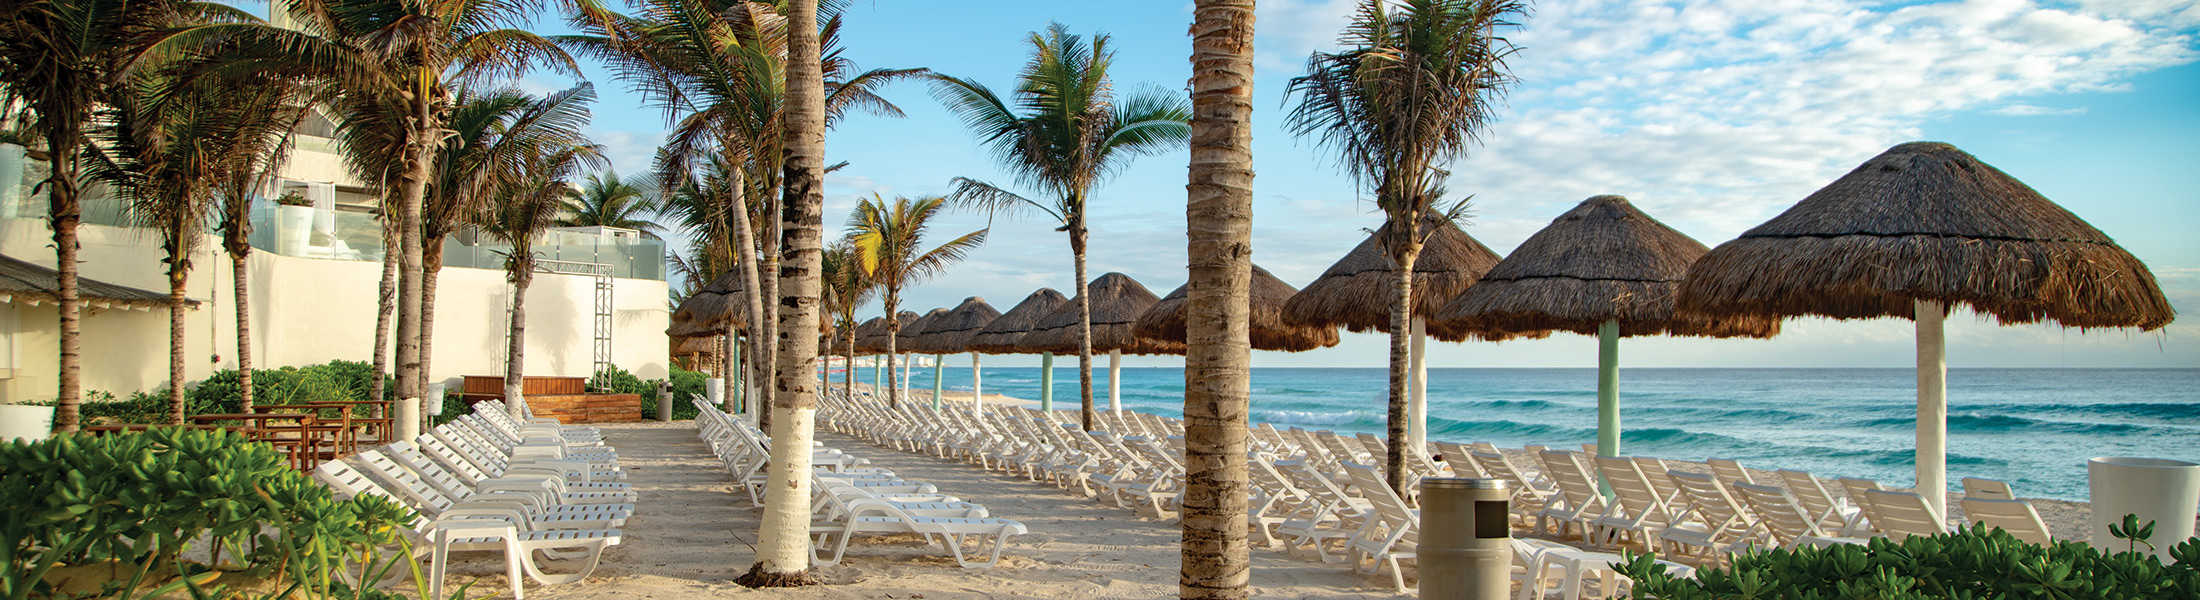 Sun loungers and palm trees on the beach at Now Emerald